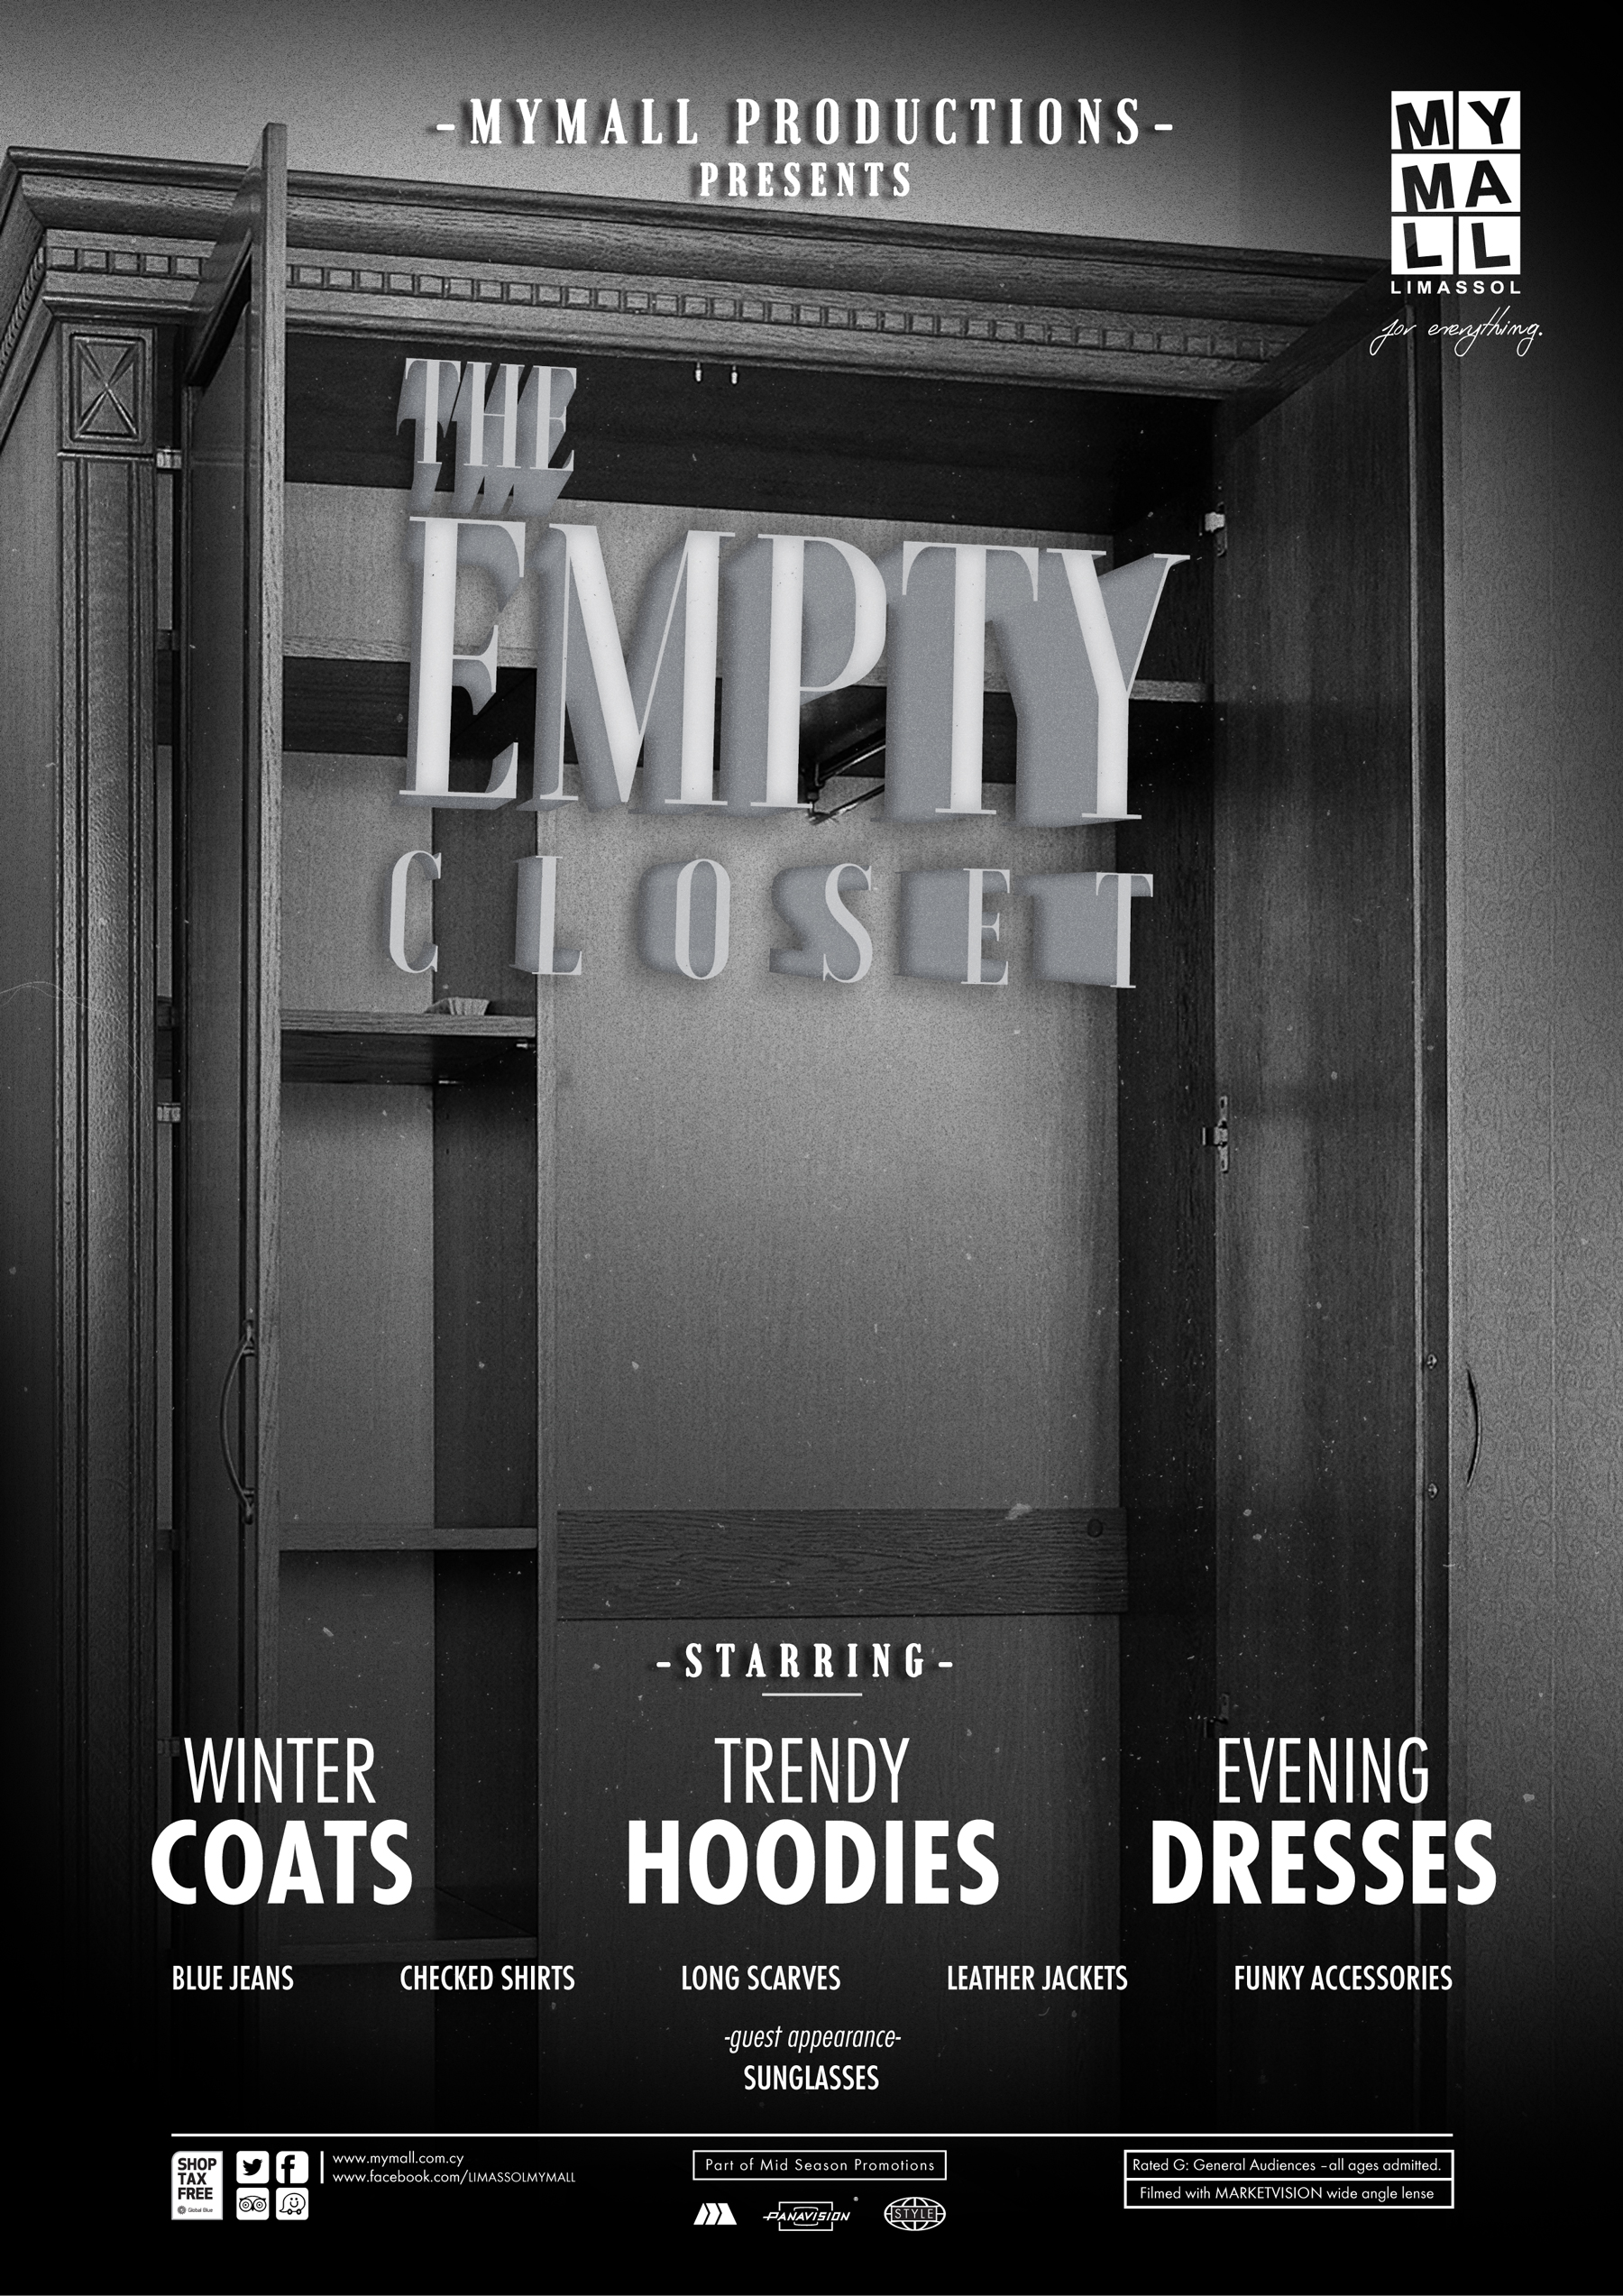 MYMALL Print Advert By Marketway The Empty Closet Ads of the World